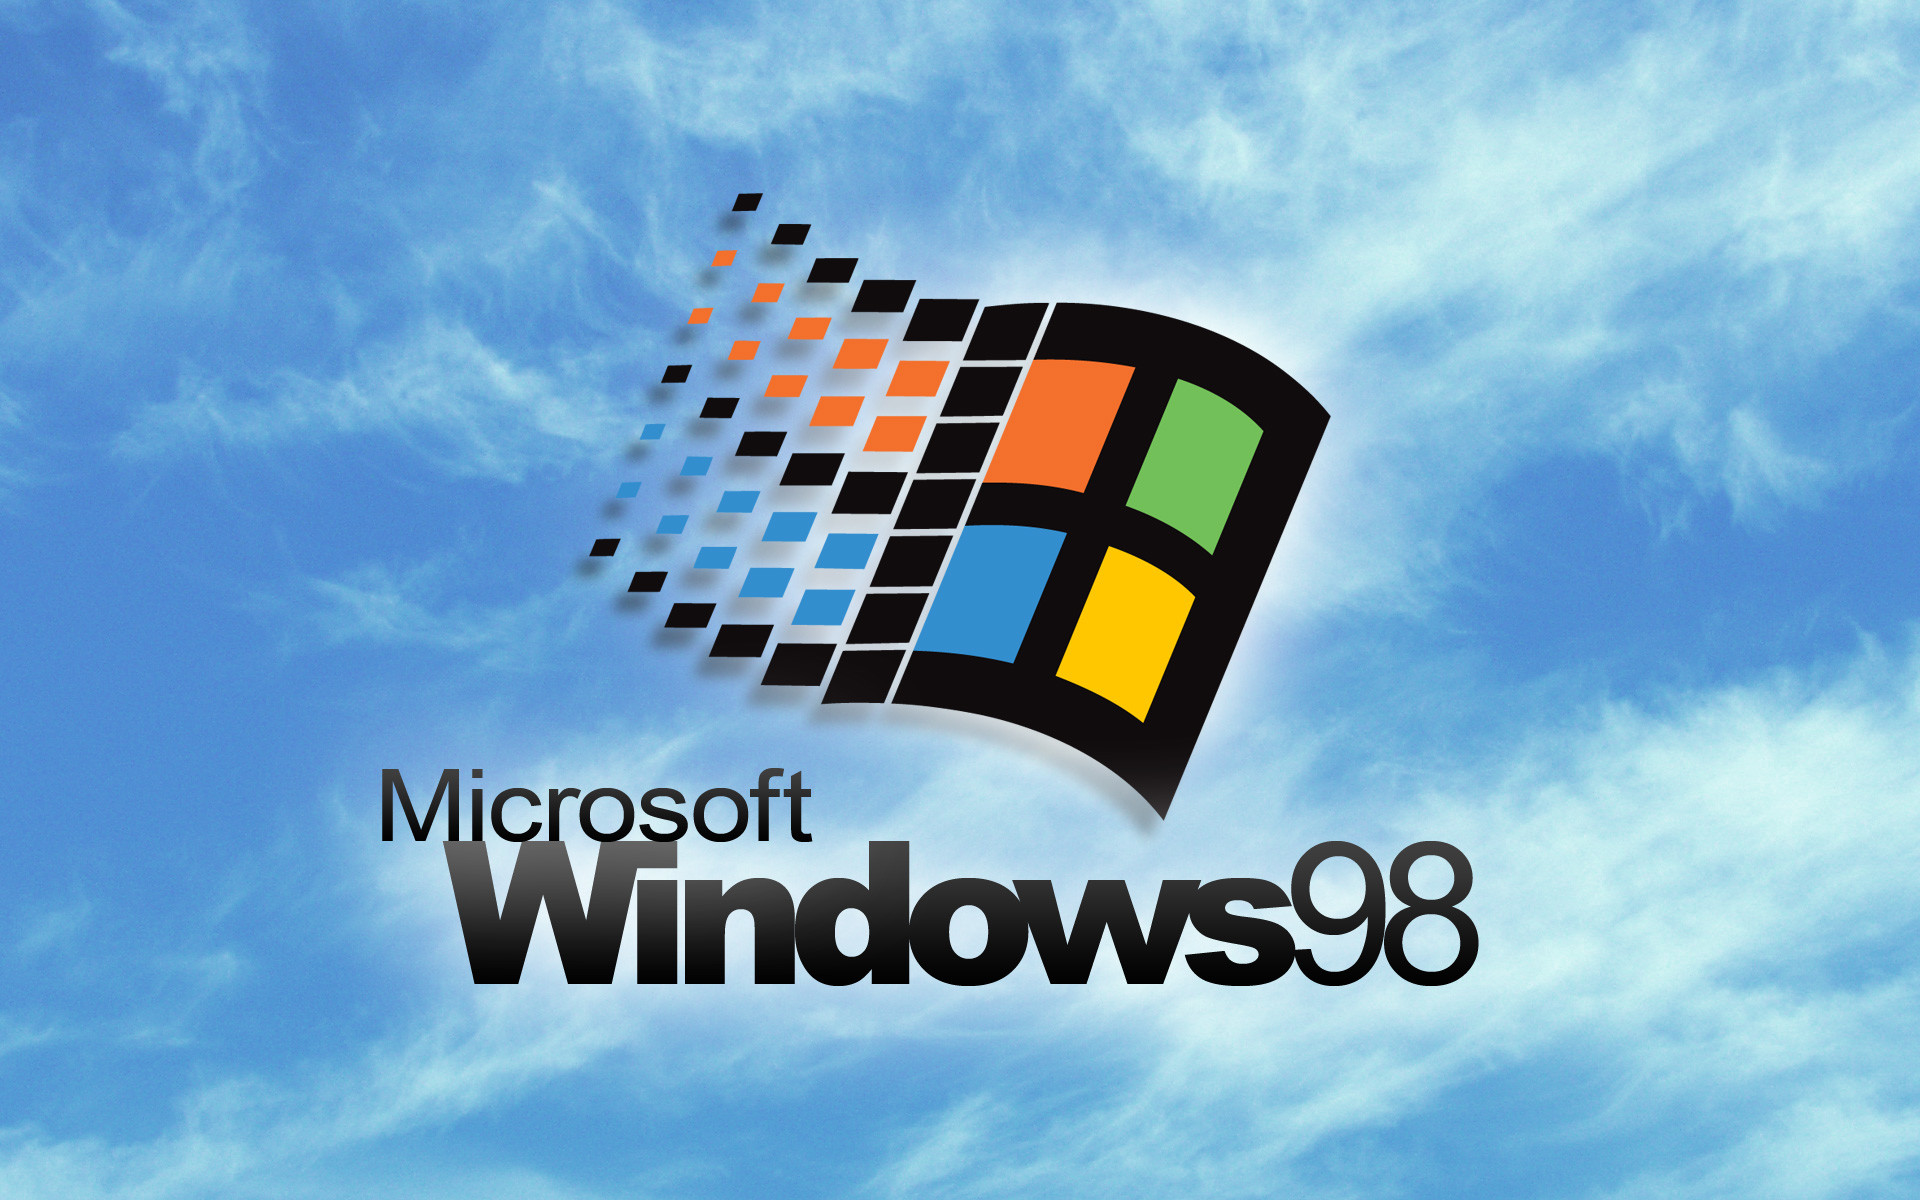 Res: 1920x1200, Large Windows 98 Wallpaper by jlsgraphics